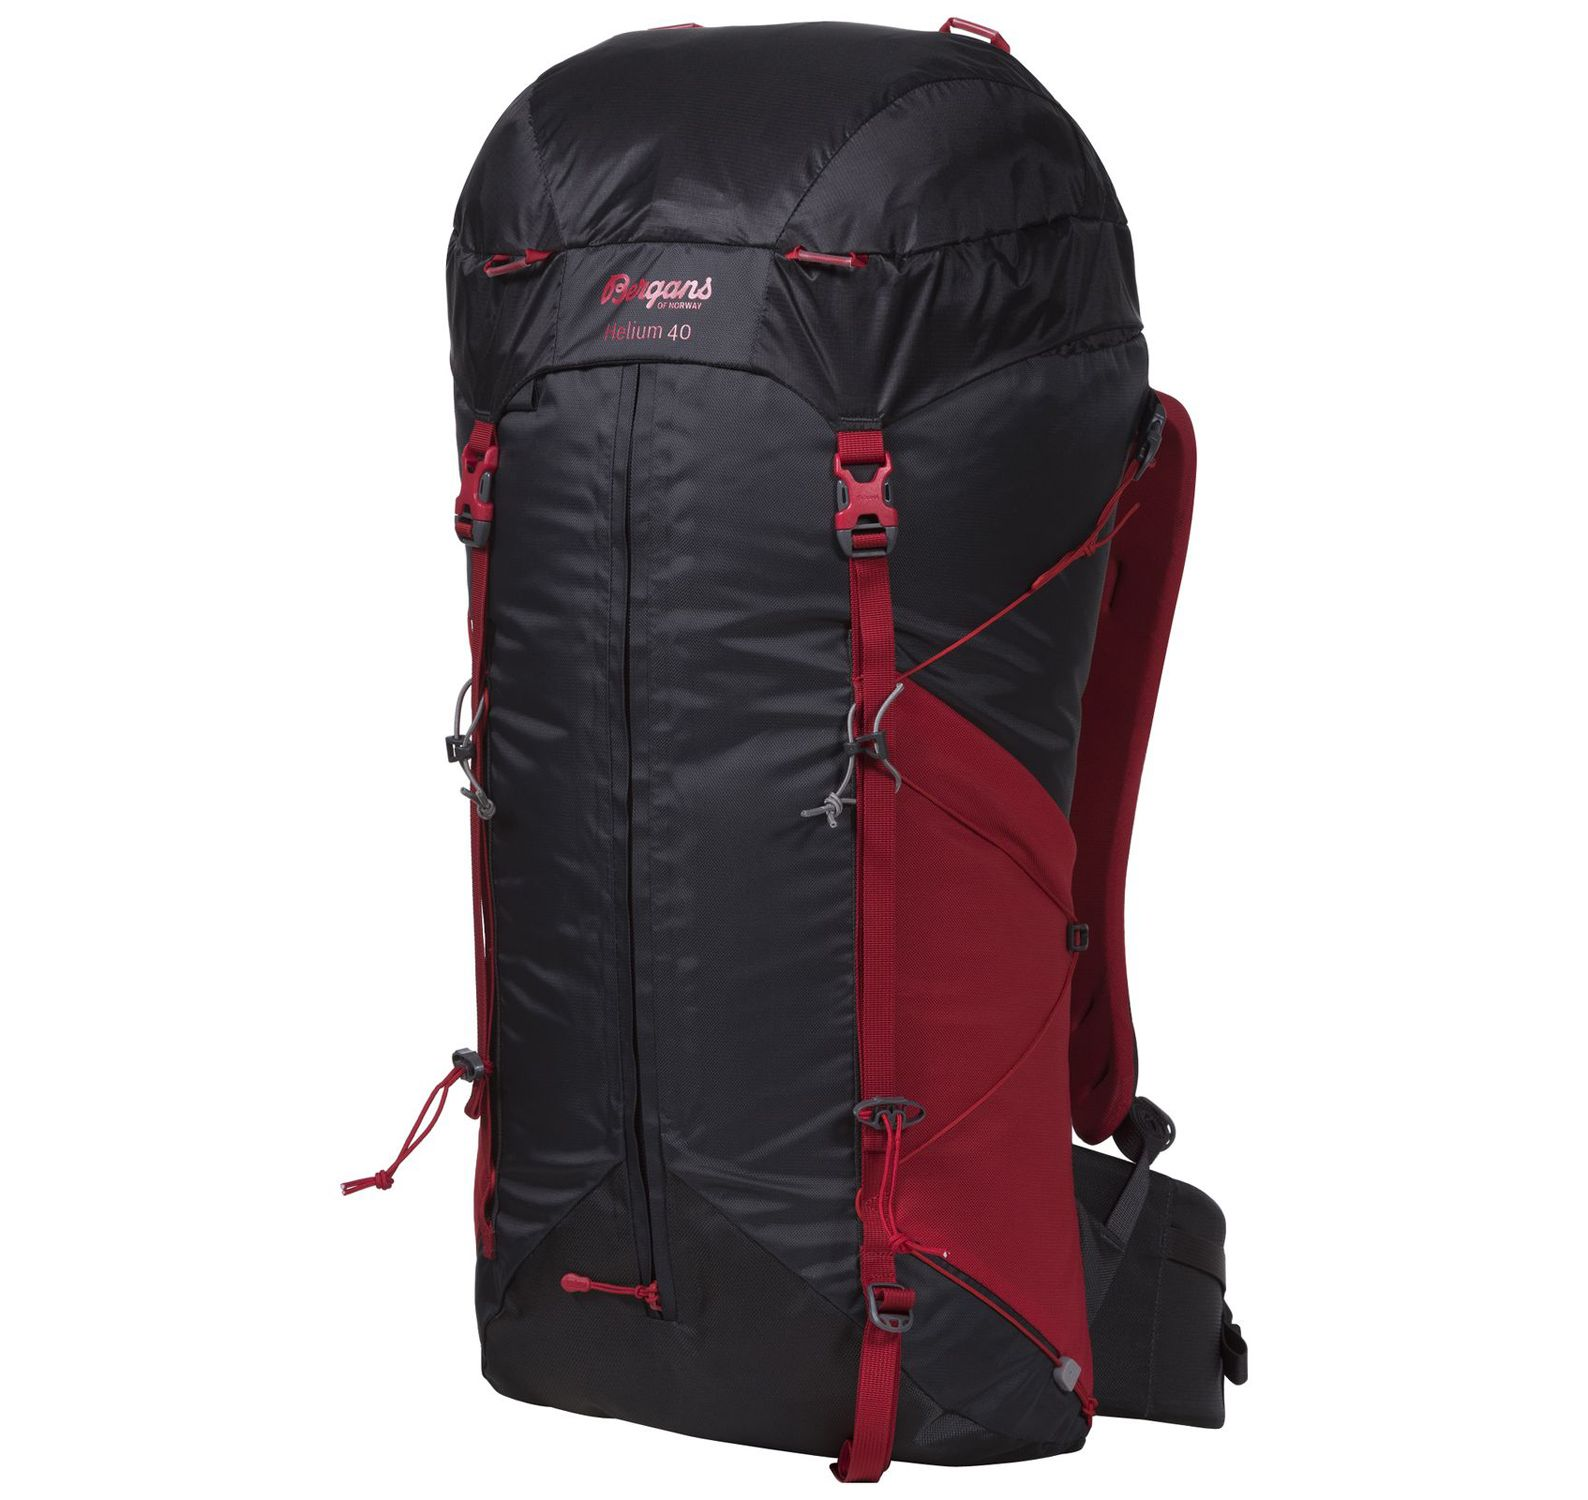 helium w 40, solidcharcoal/red, 40,  bergans